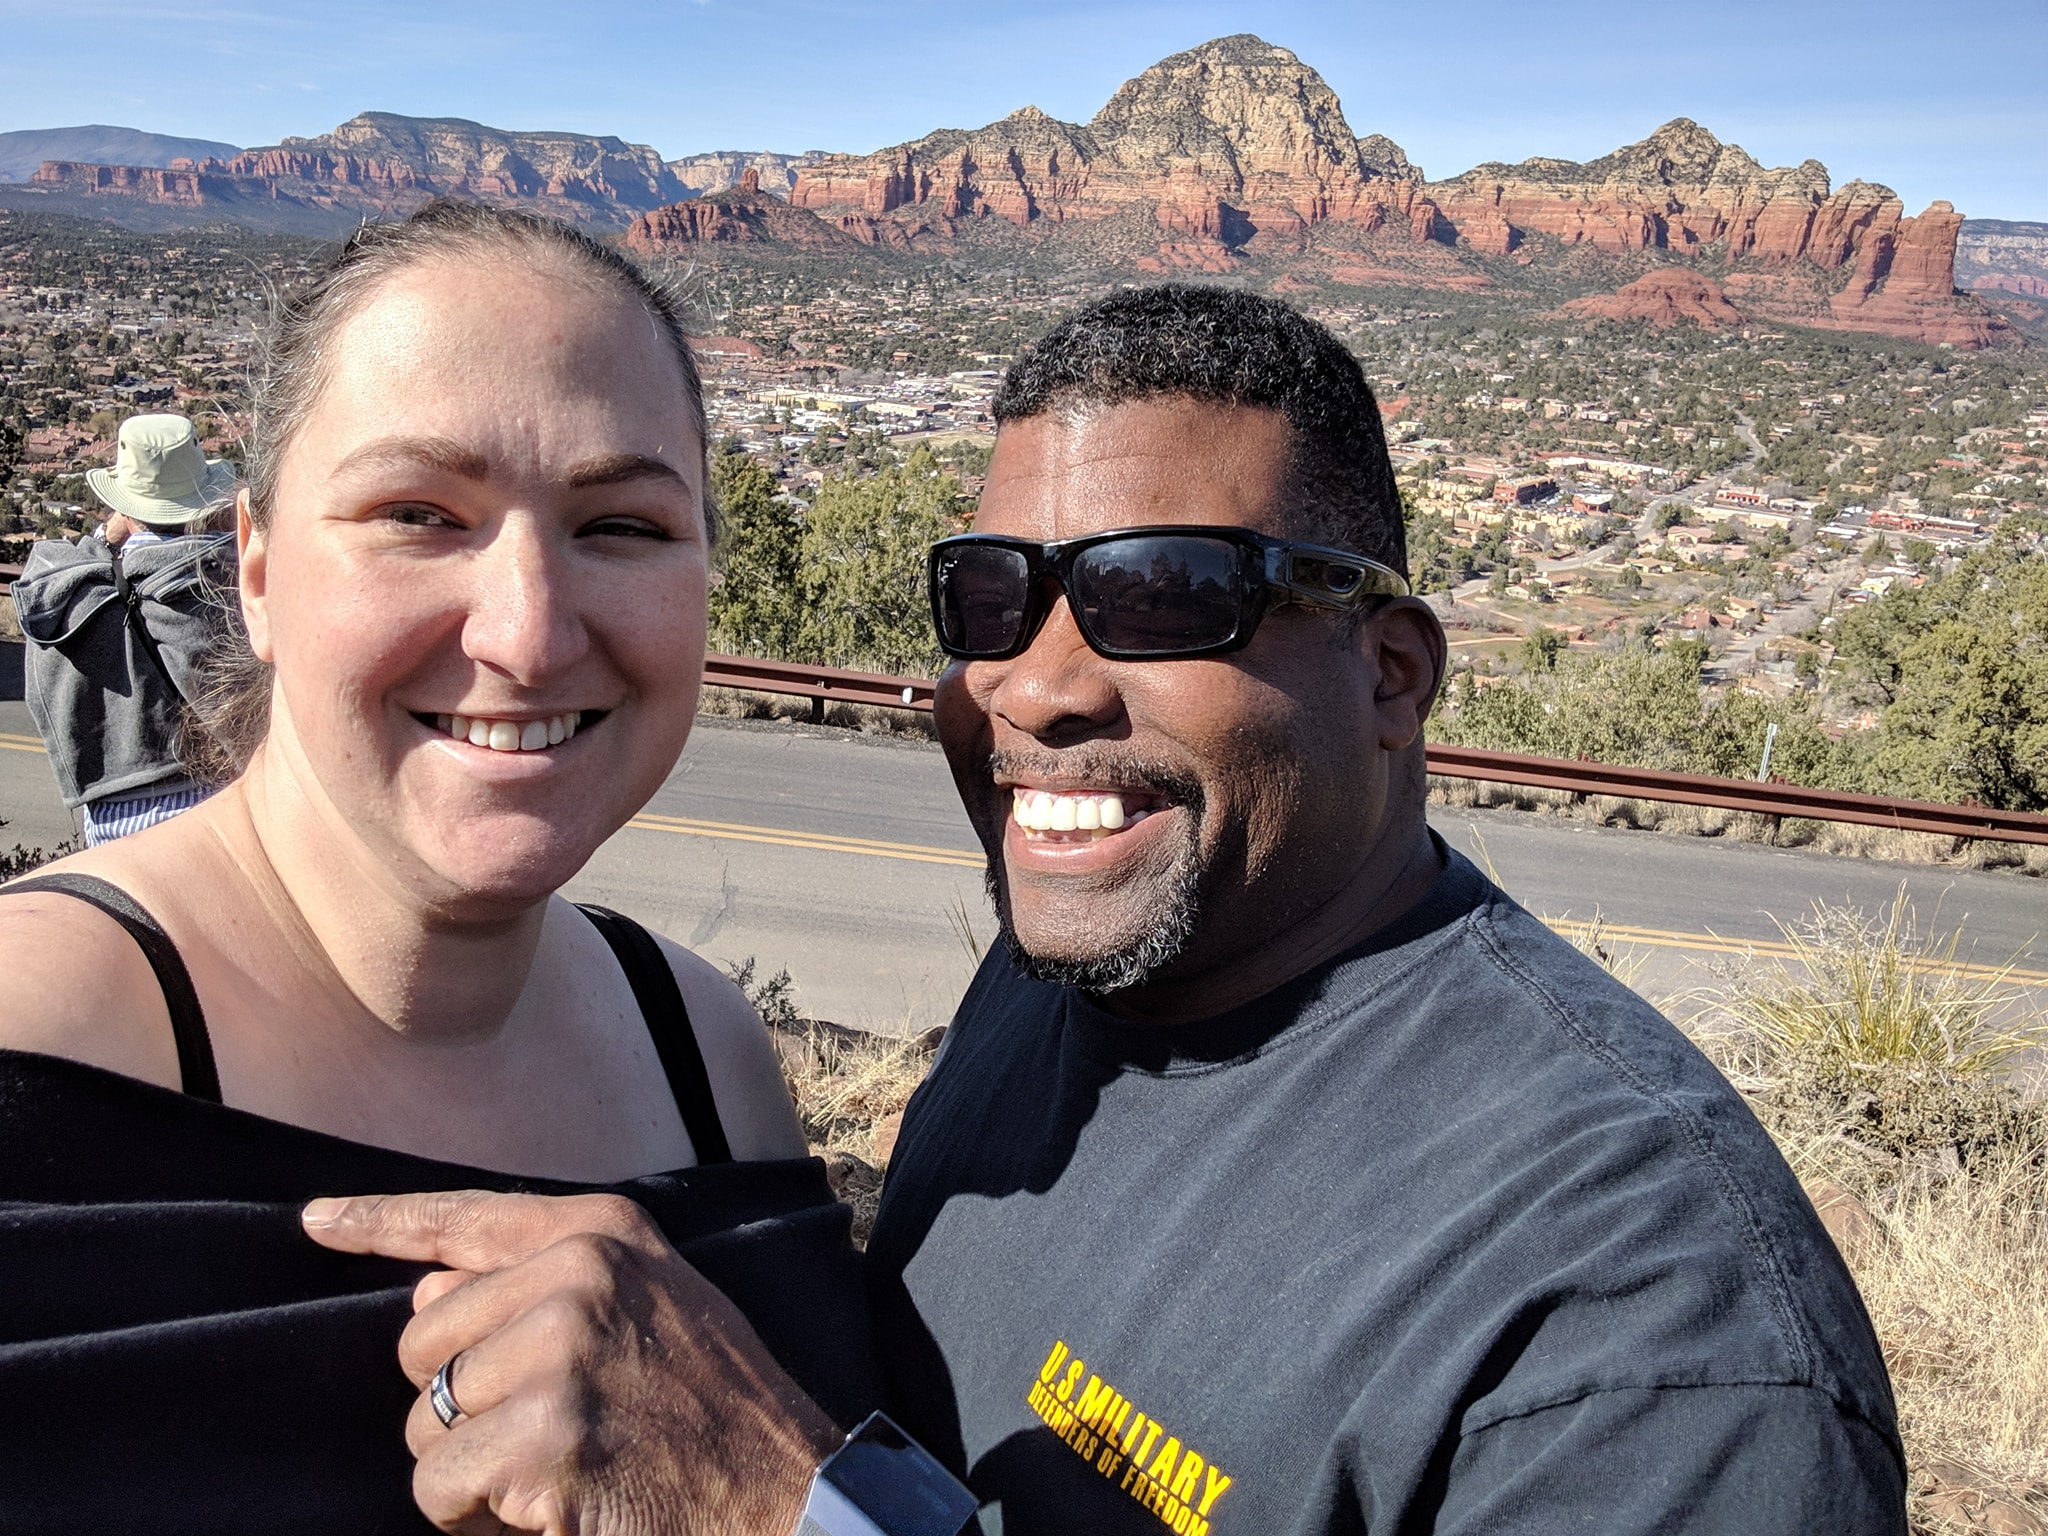 sedona date ideas